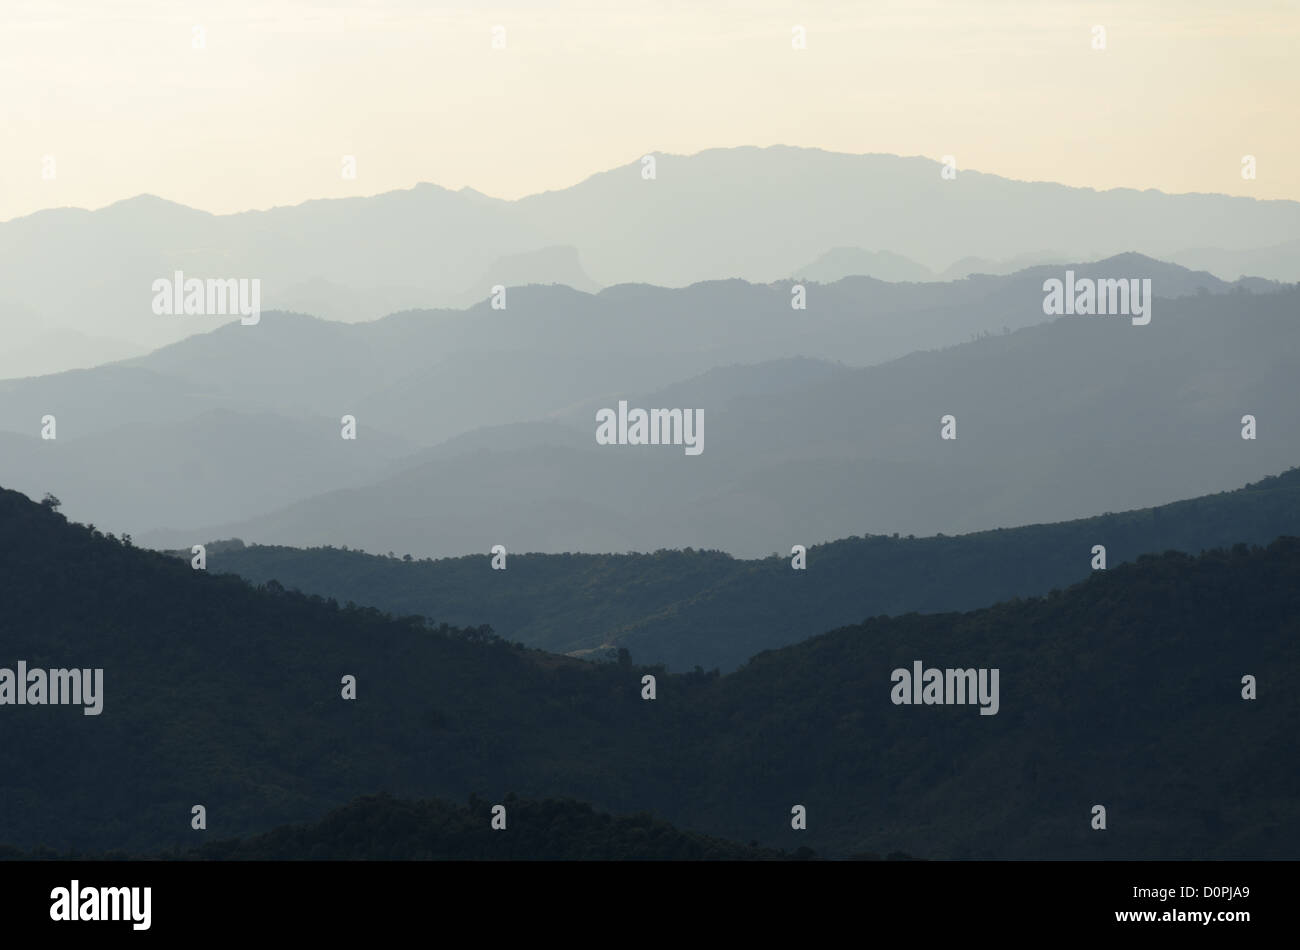 The rugged mountain ranges in the remote regions of northern Laos, not far from the Chinese border. - Stock Image